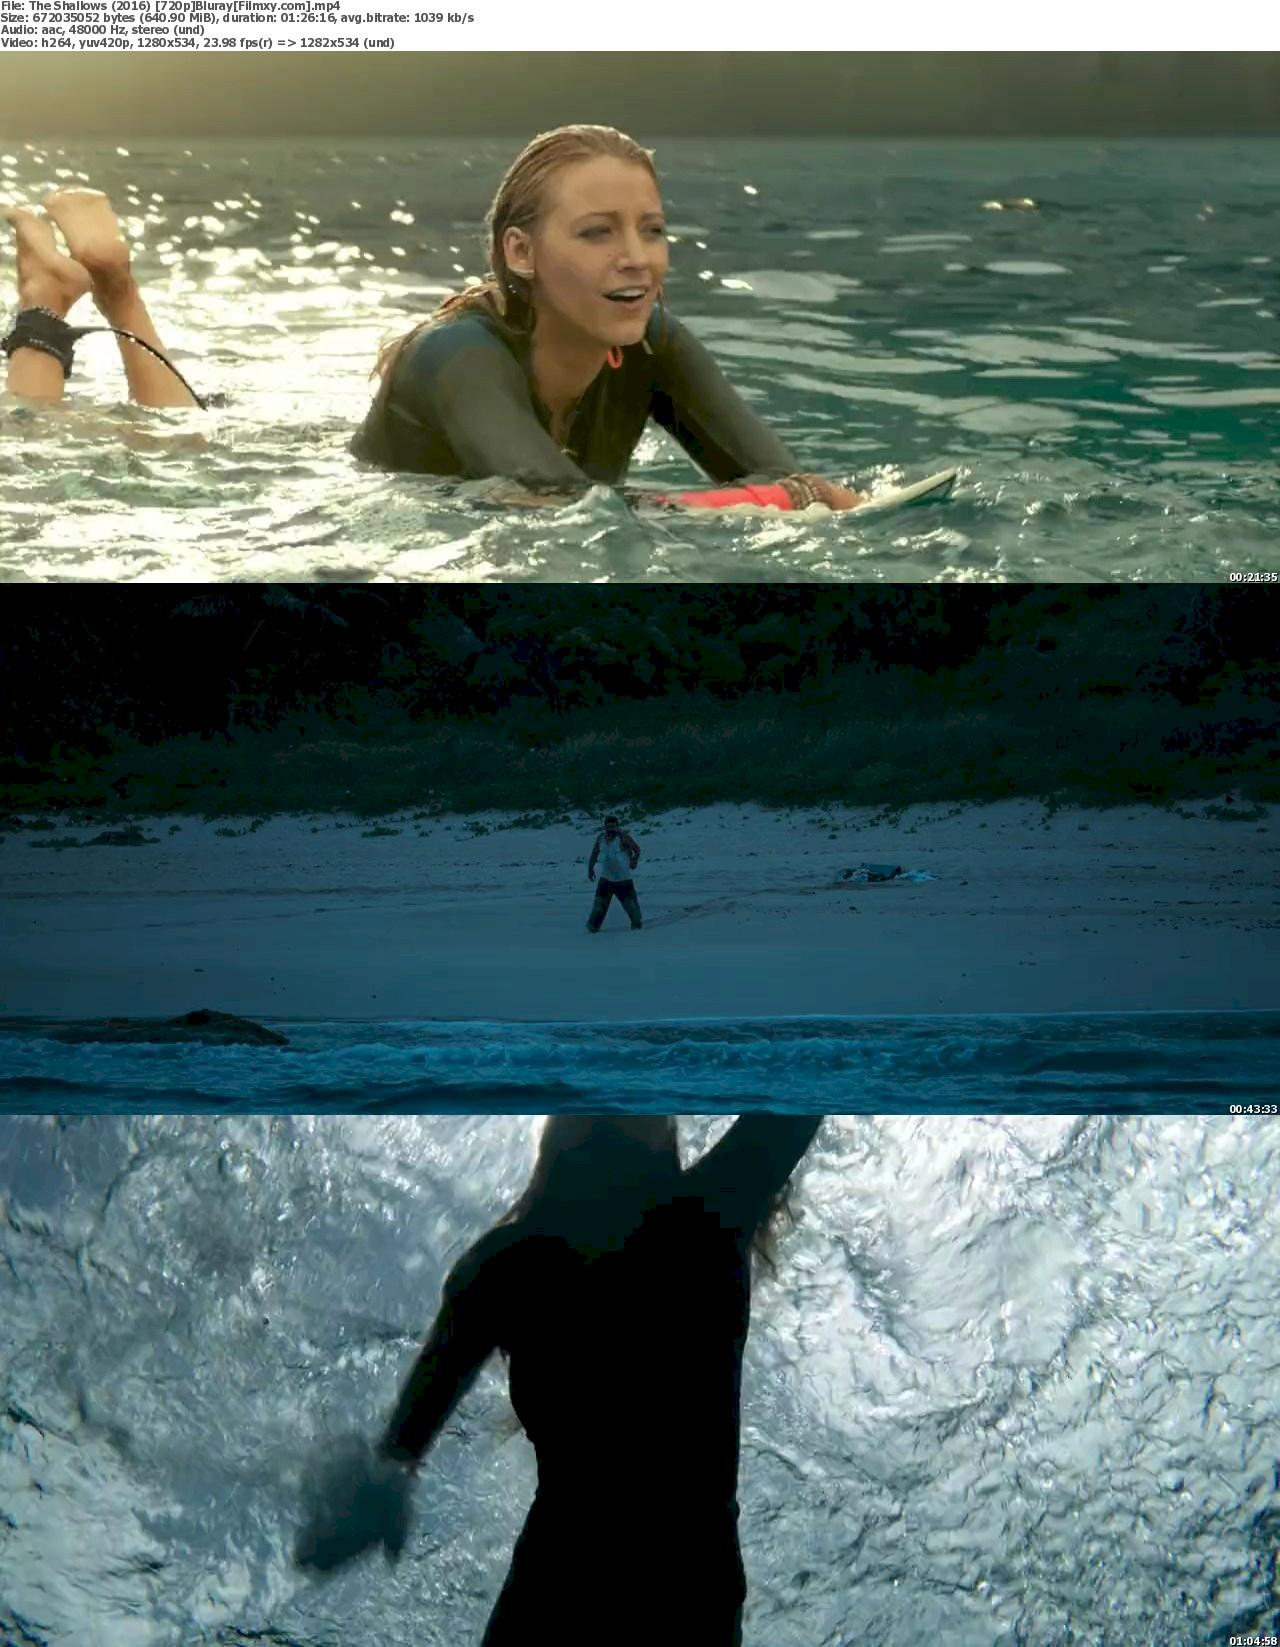 The Shallows (2016) 720p & 1080p Bluray Free Download 720p Screenshot